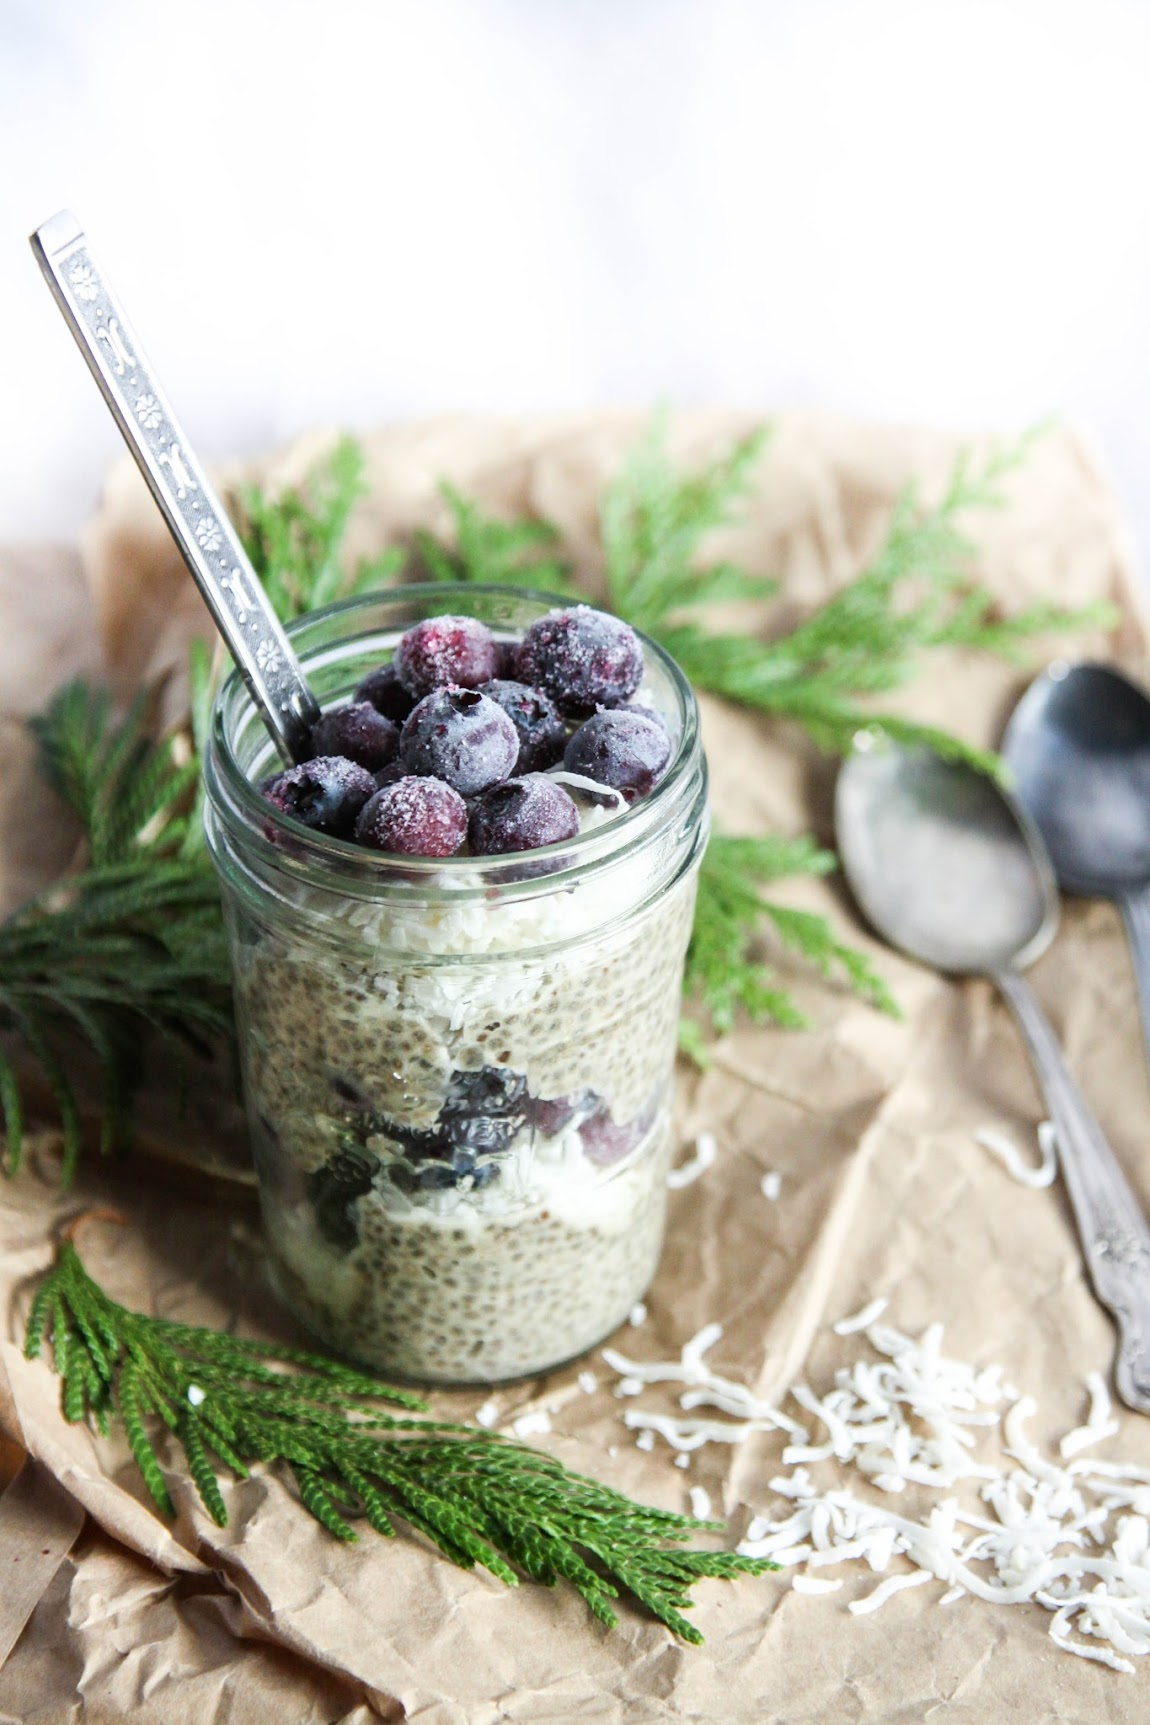 Check out Looking For A Great-Tasting Chia Seeds Recipe? Here Are 17! at https://homemaderecipes.com/chia-seeds-recipe/